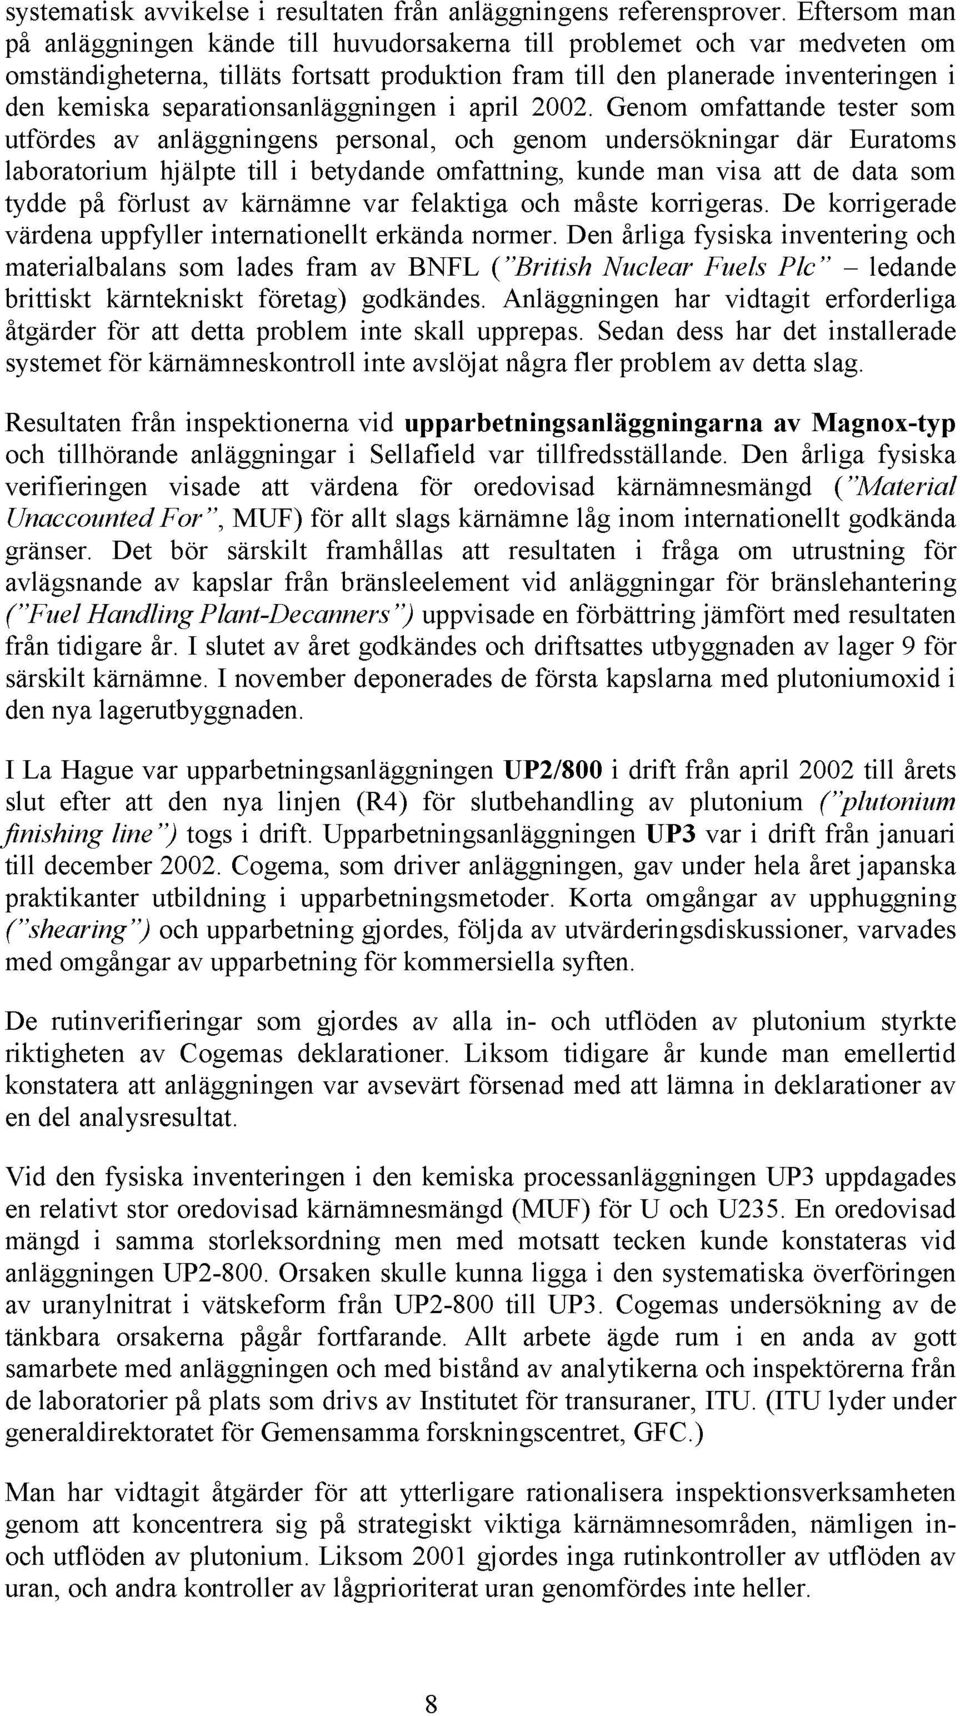 separationsanläggningen i april 2002.